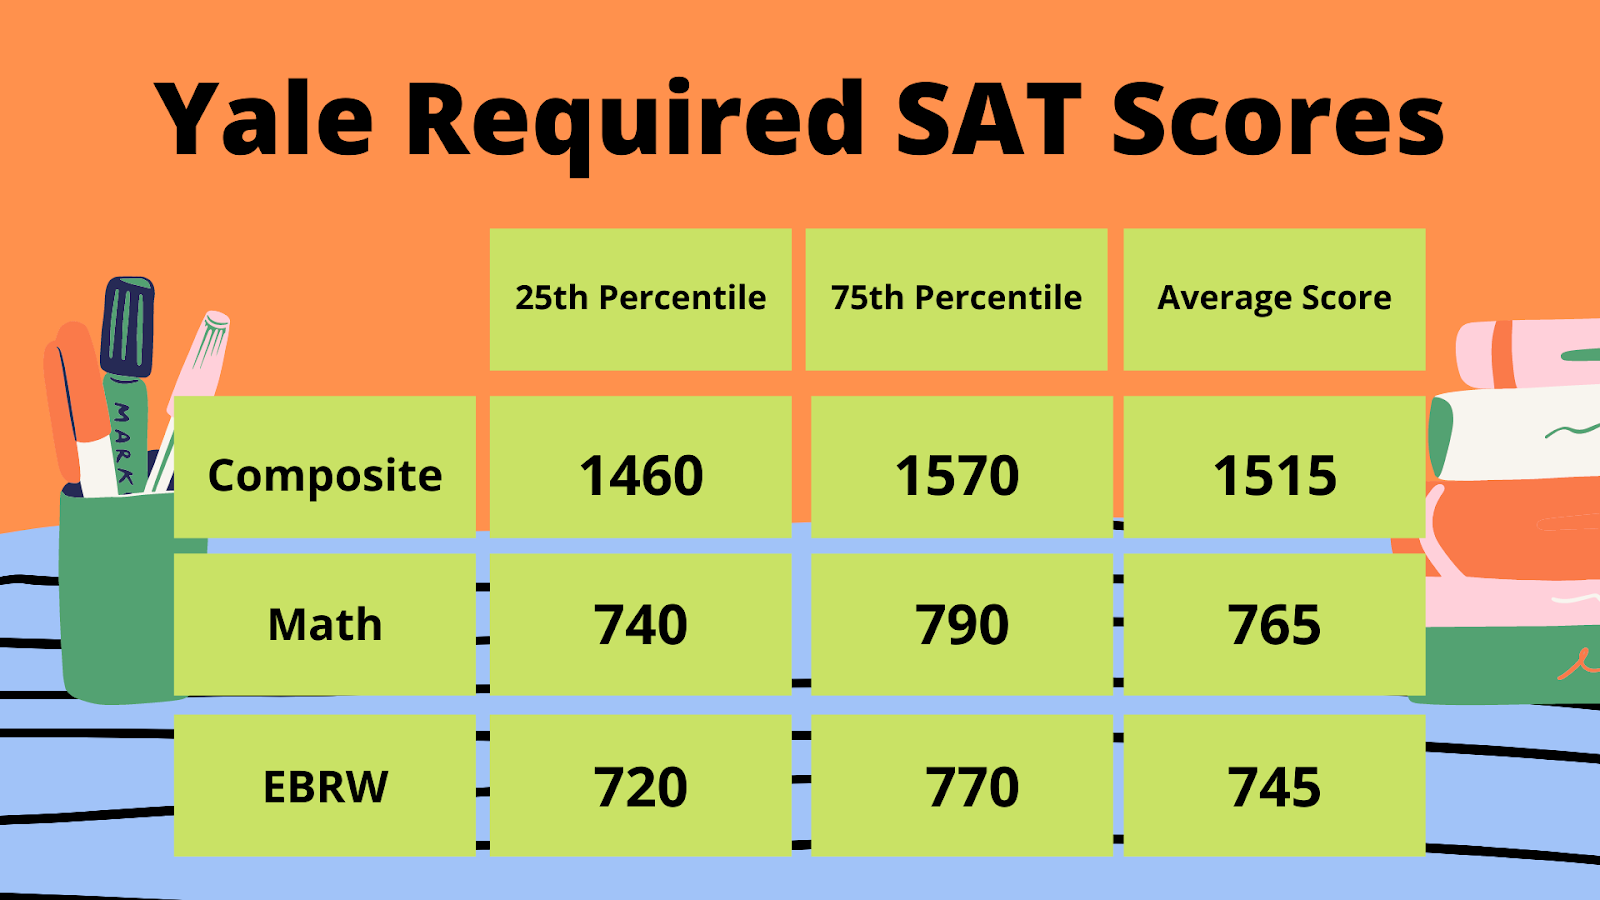 Yale required SAT Scores